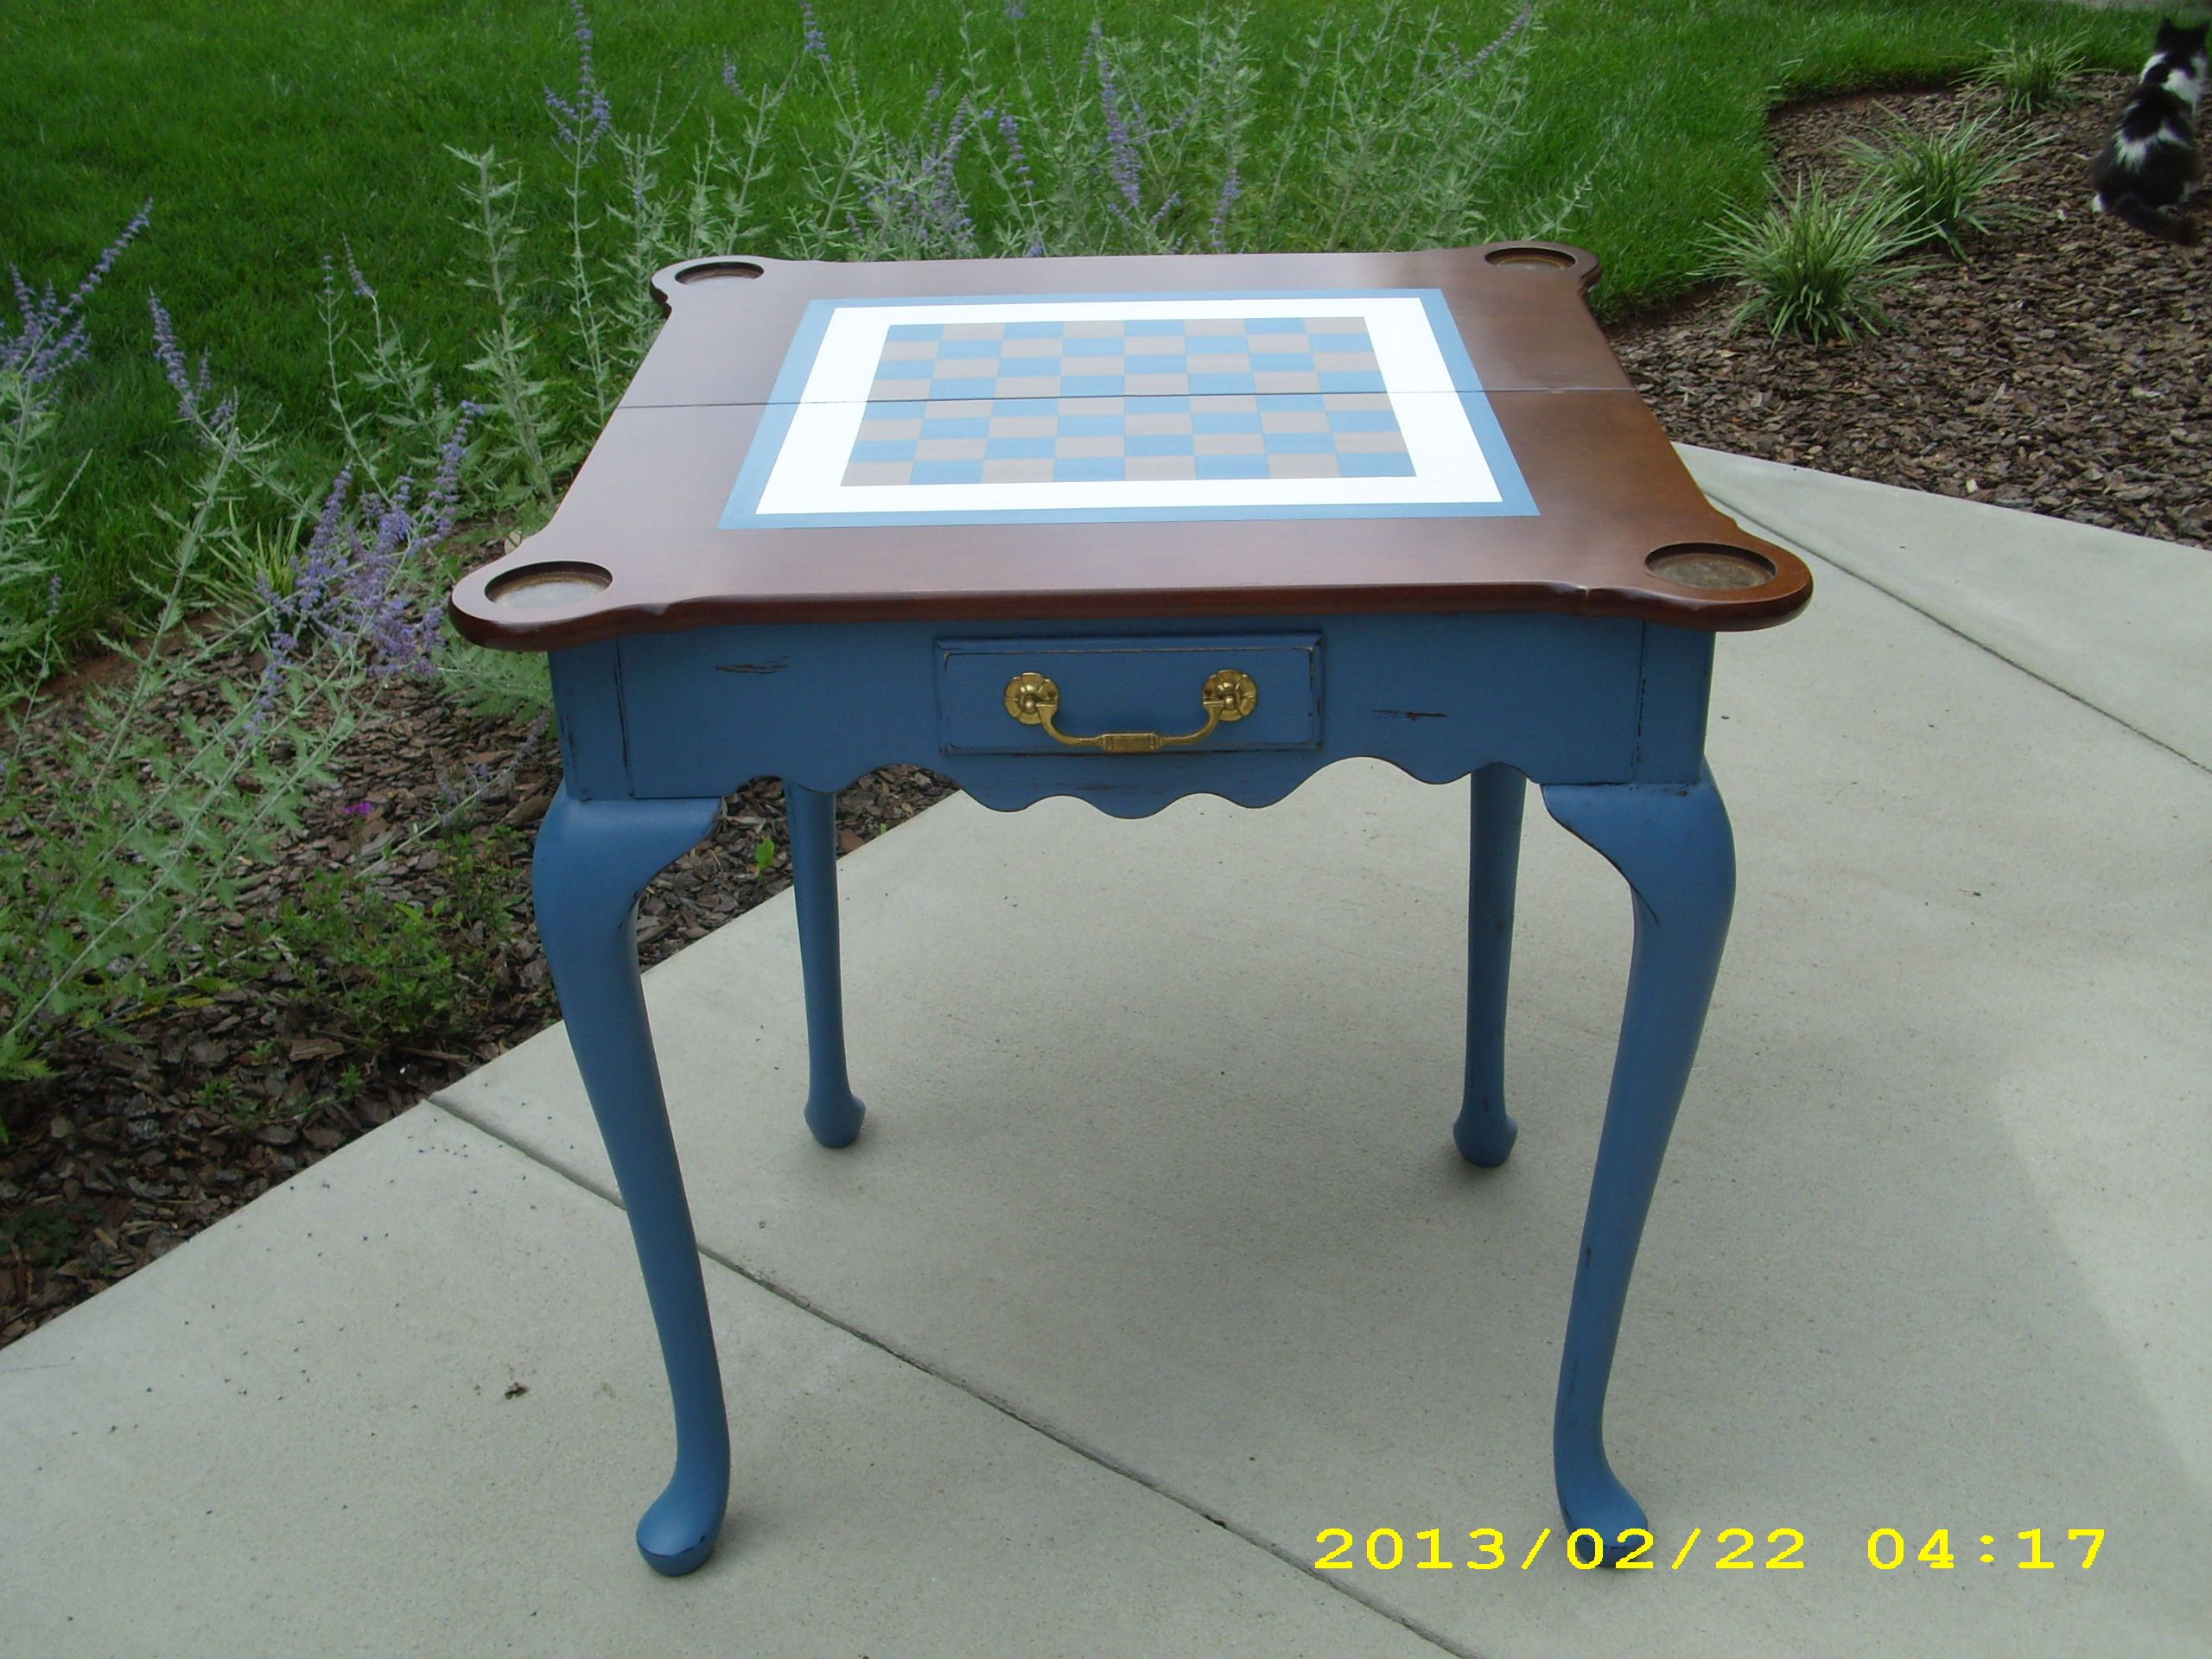 painted checkerboard on top of game table.